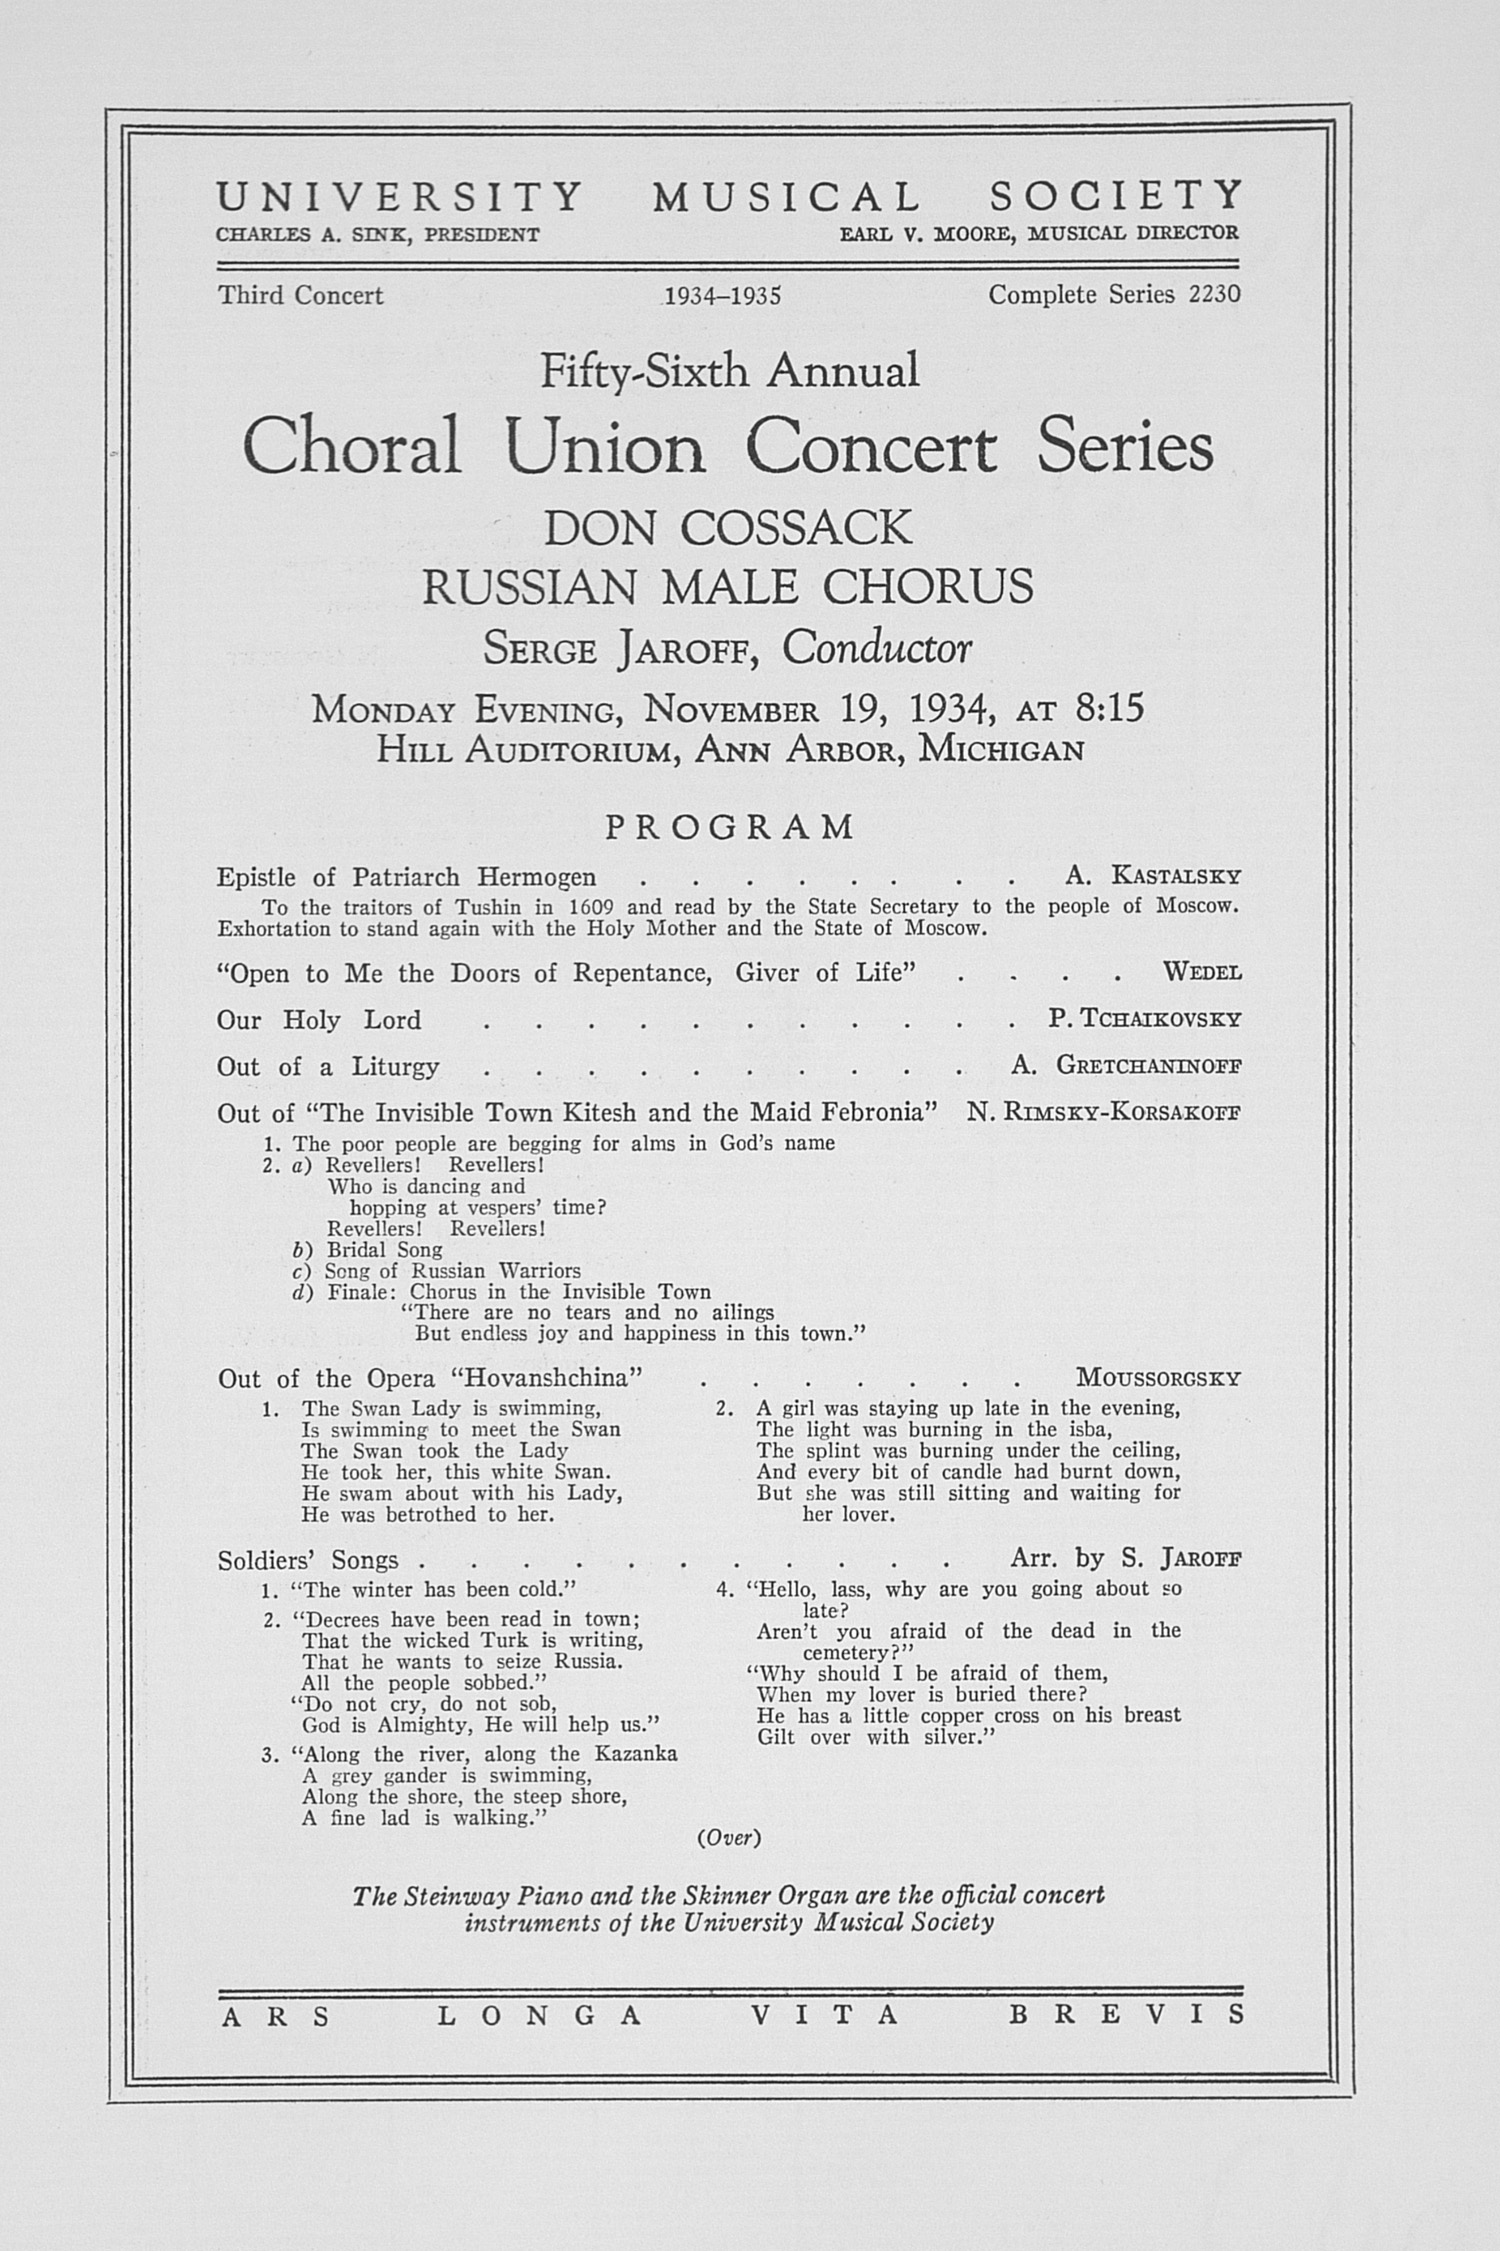 UMS Concert Program, November 19, 1934: Fifty-sixth Annual Choral Union Concert Series -- Don Cossack  image